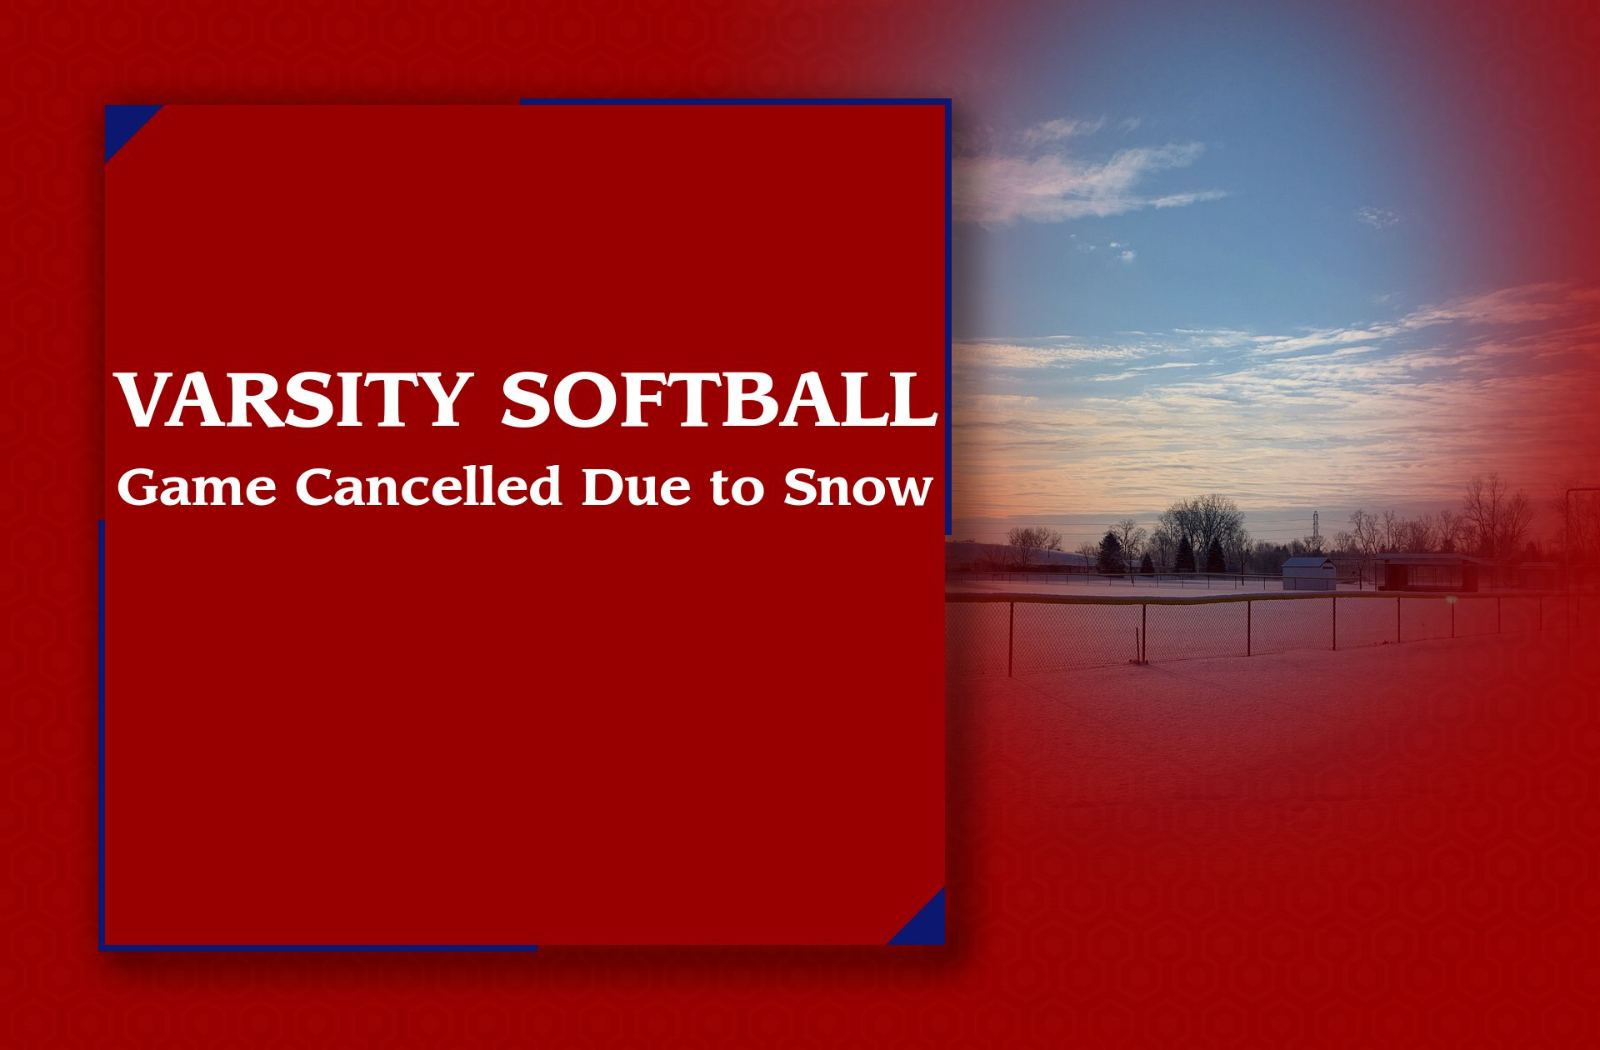 Varsity Softball Game Cancelled Due to Snow